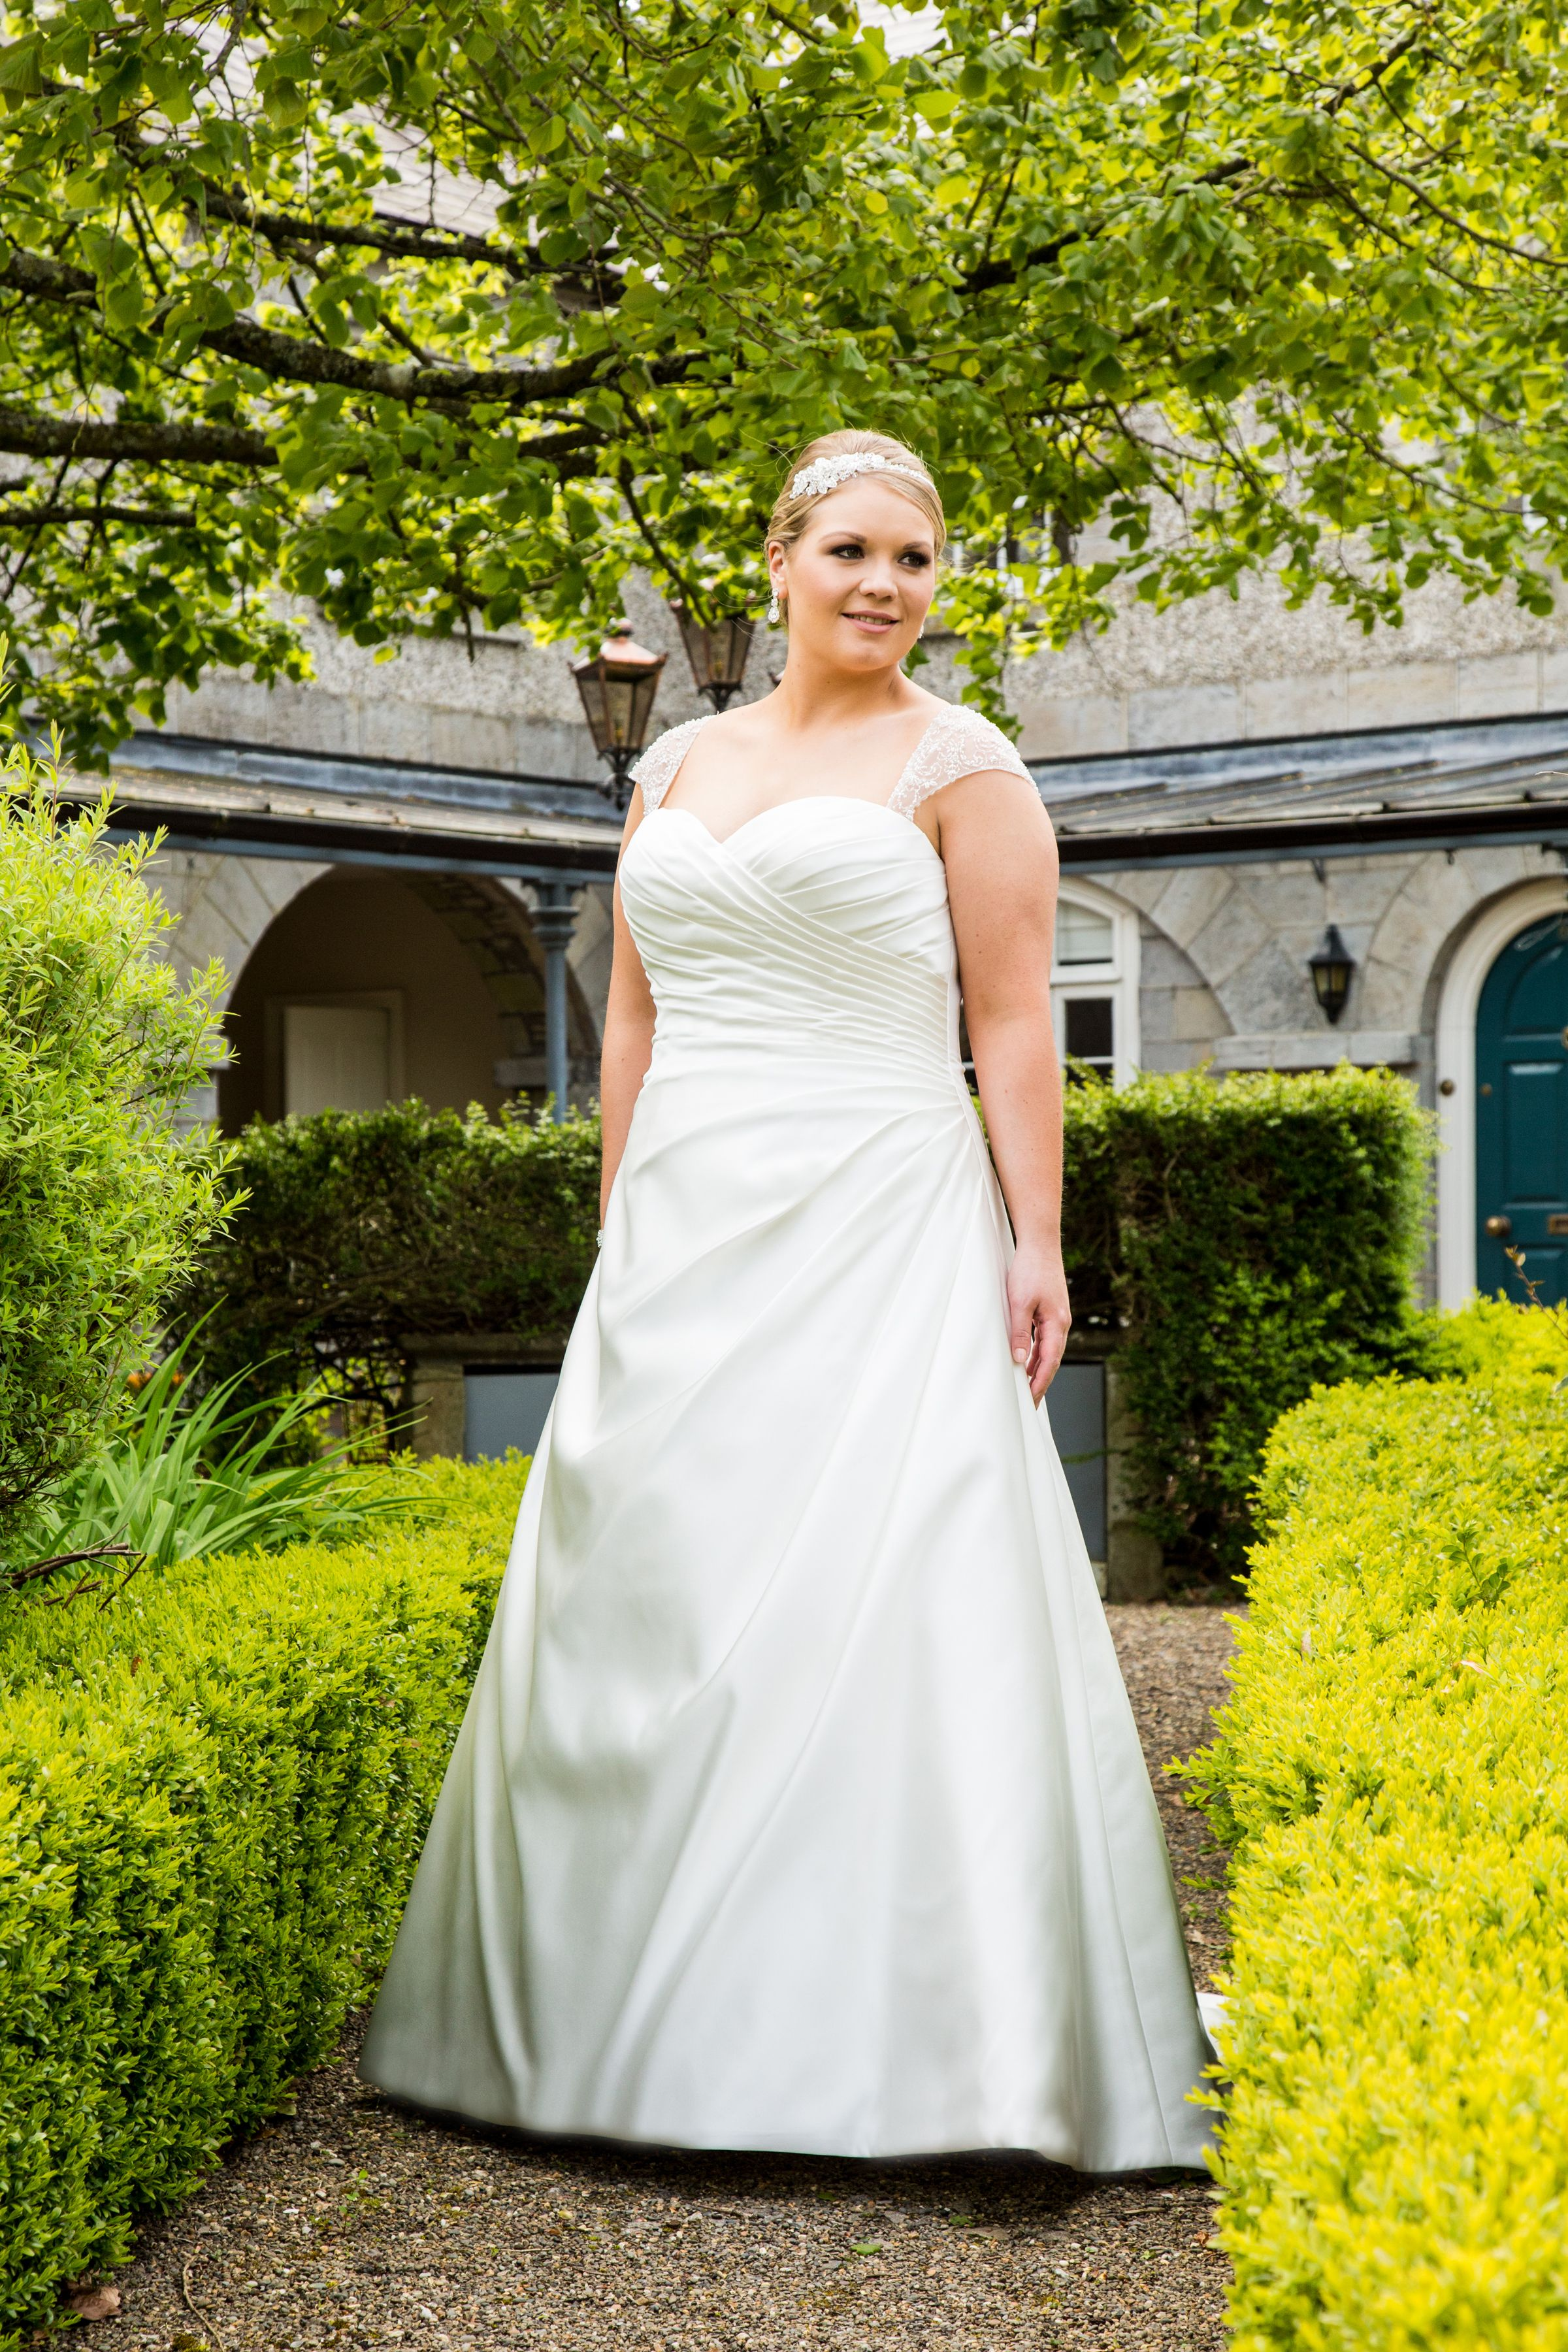 Simple Yet Beautifully Detailed Brides Dress From Finesse Bridal Wear In Listowel Co Kerry